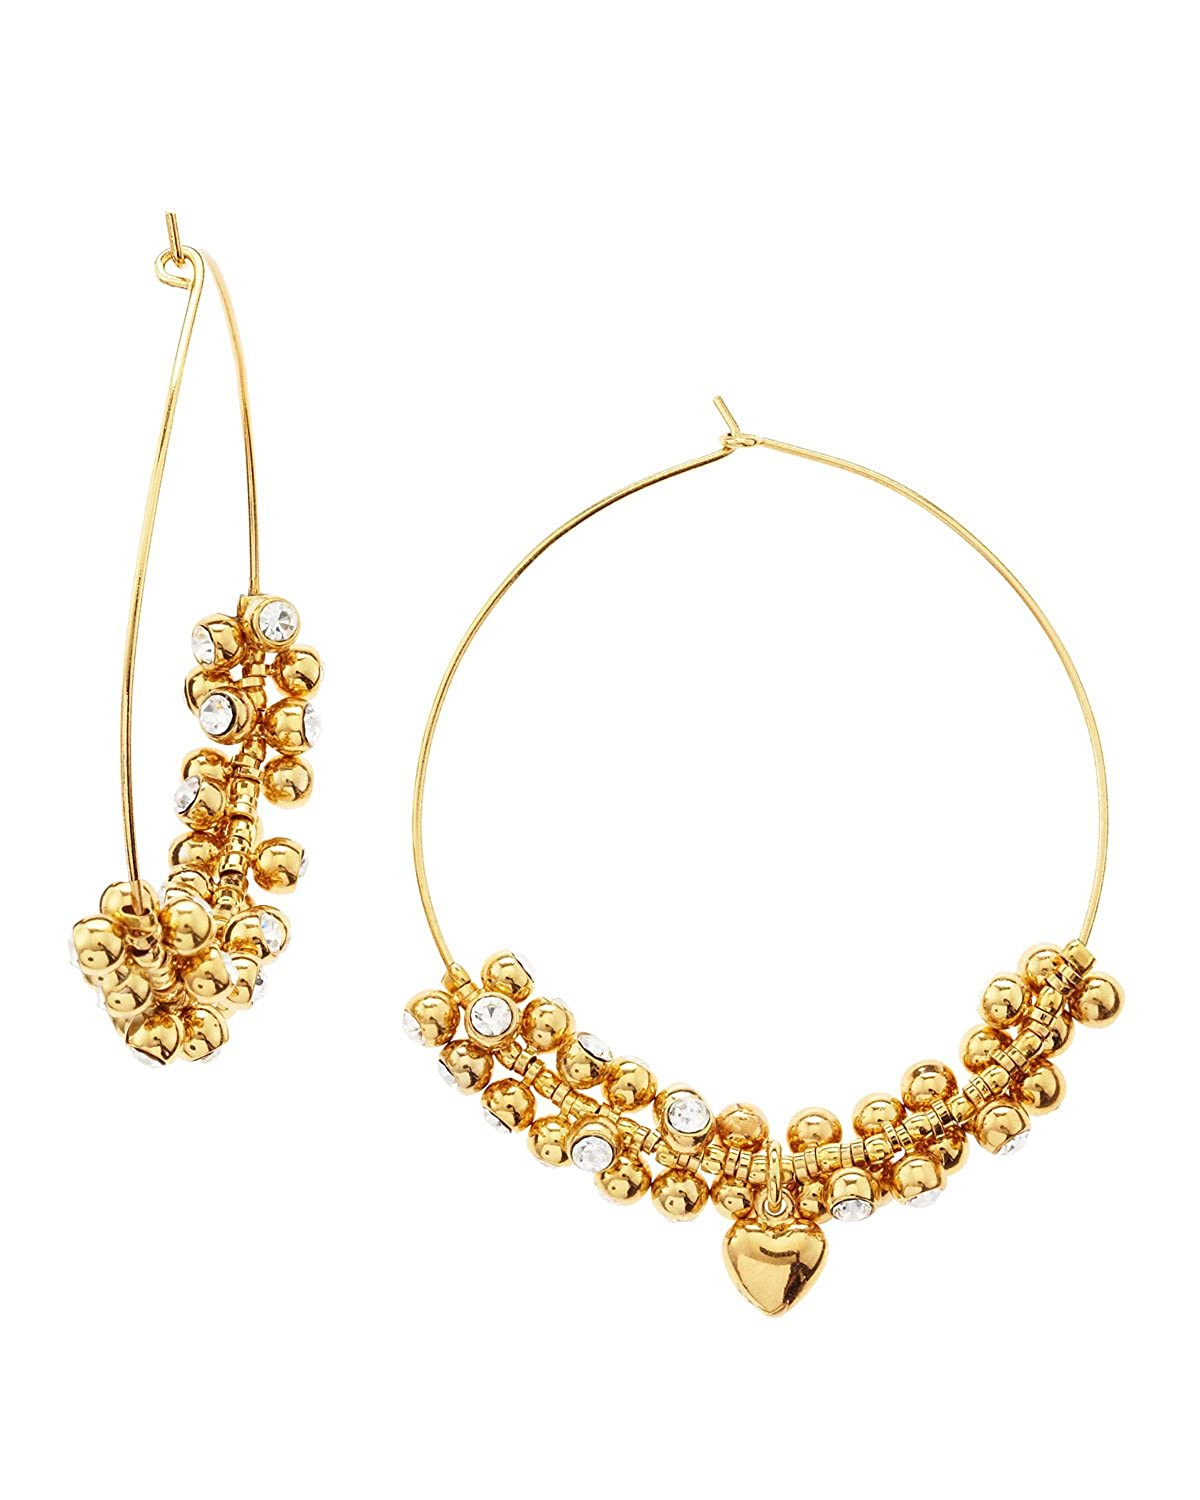 6dd92e72cc114 Amazon.com: Juicy Couture Gold Cz Beaded Hoop Earrings: Jewelry